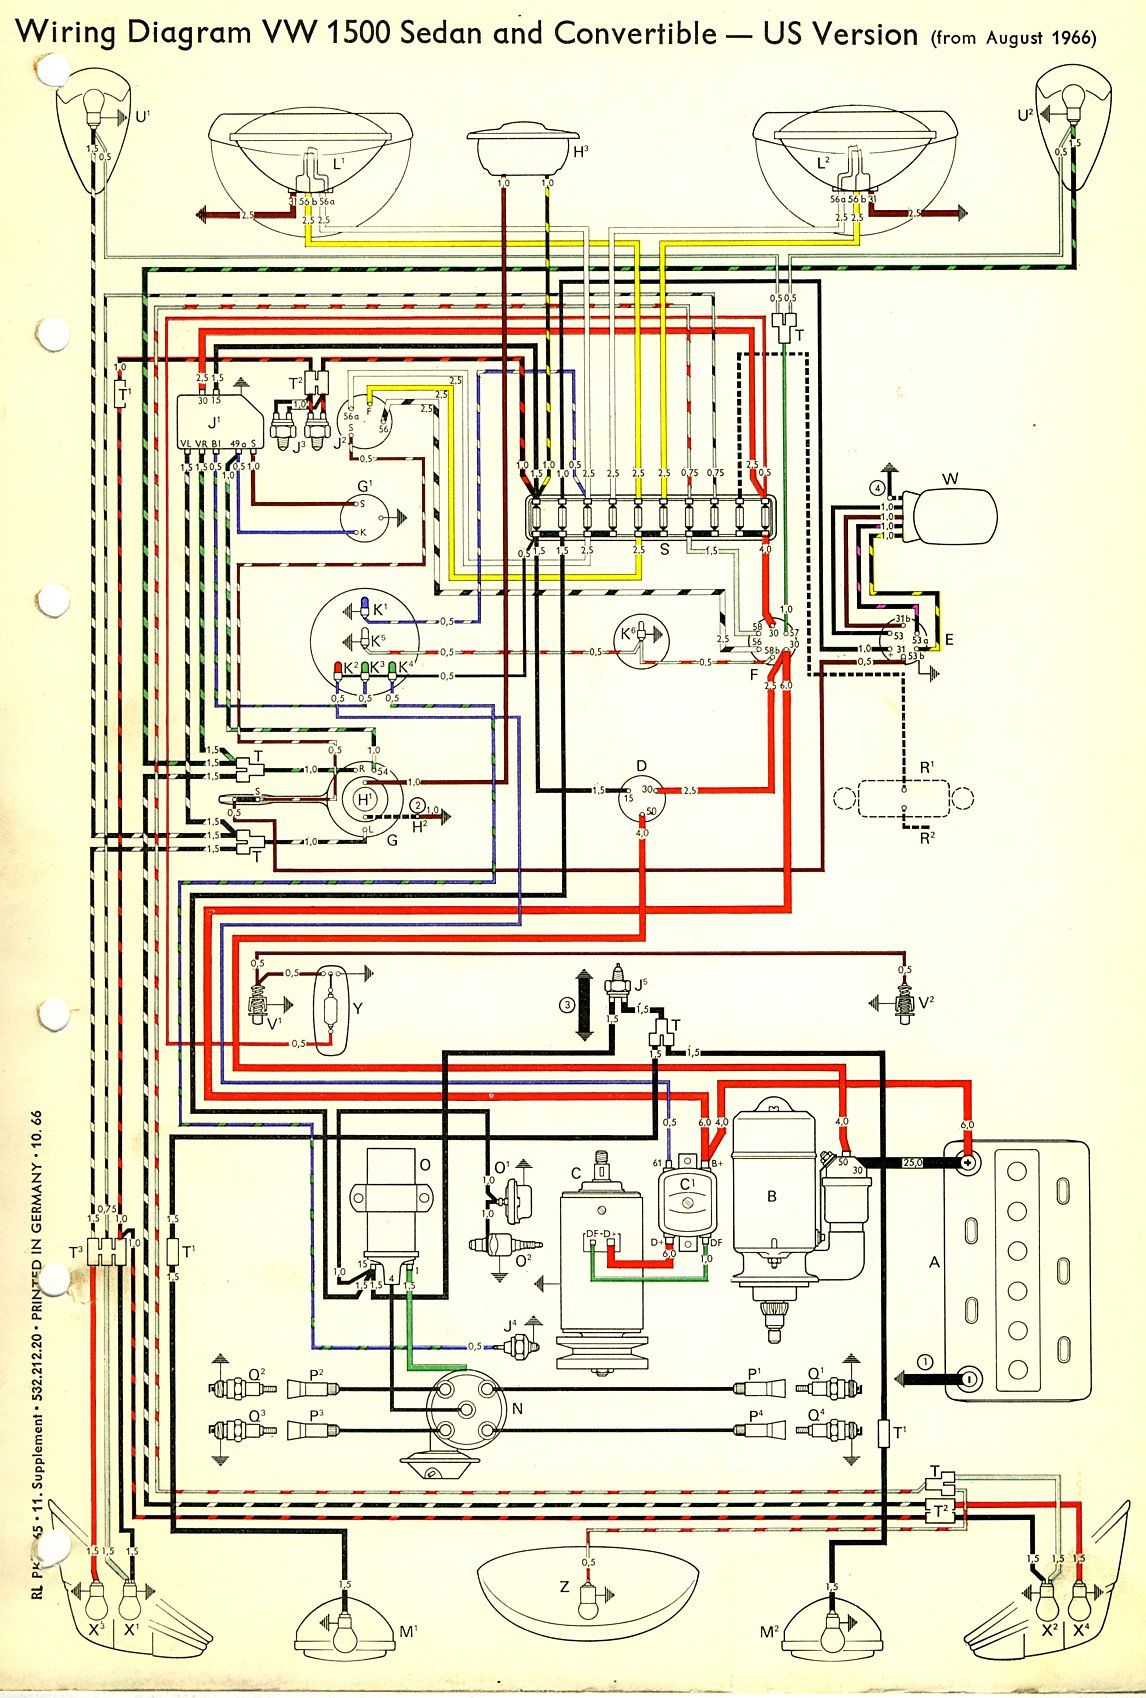 1971 Vw Super Beetle Auto Shift Wire Diagram Wiring Diagrams Cooperate Cooperate Chatteriedelavalleedufelin Fr